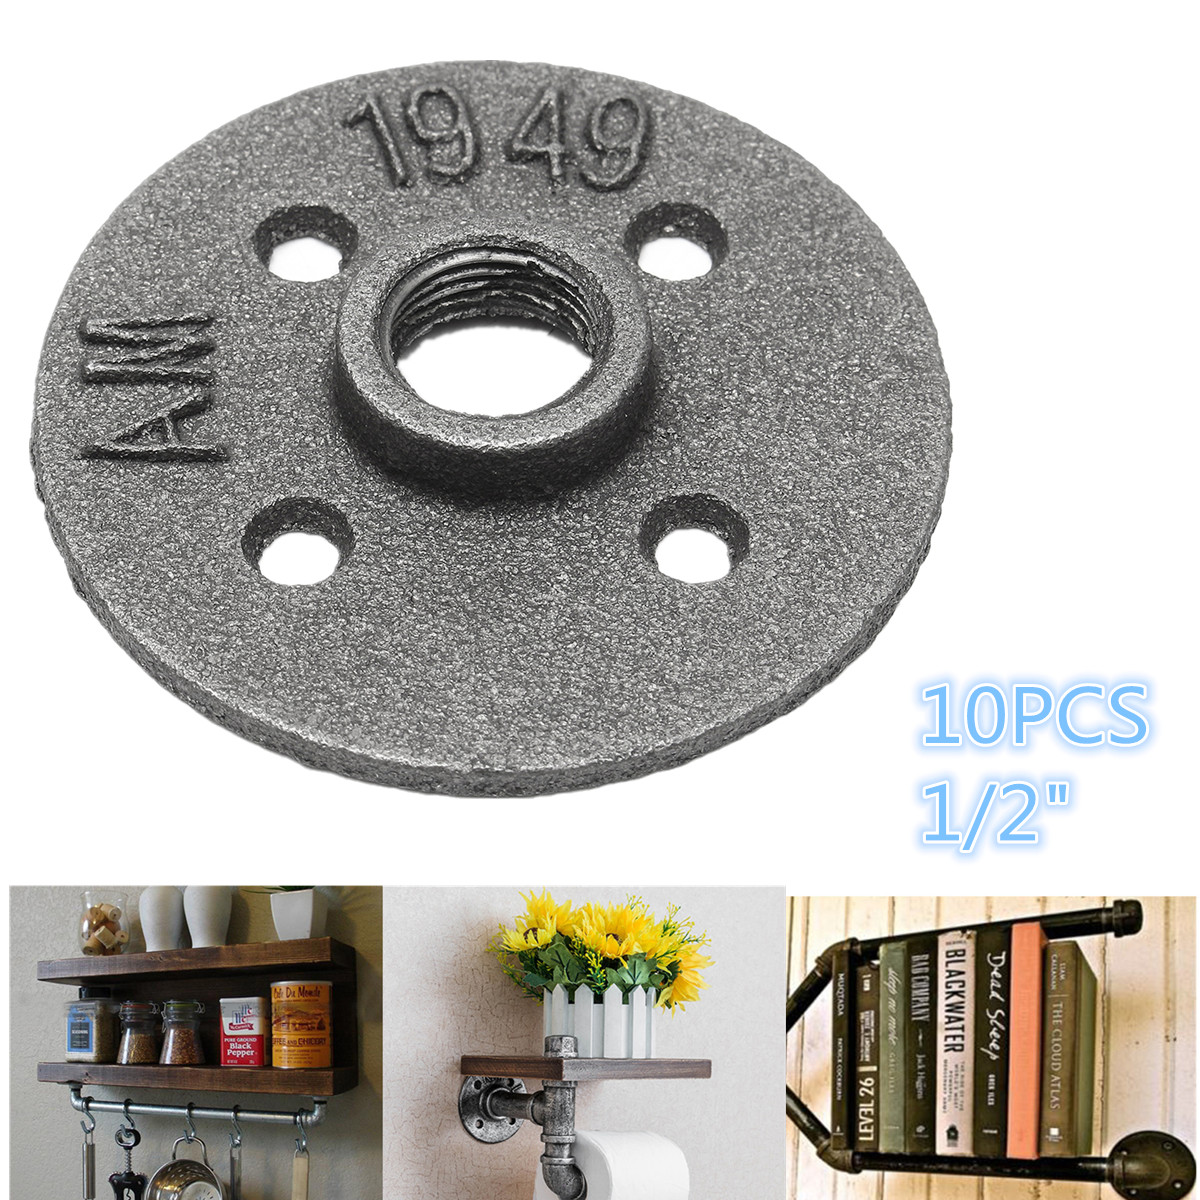 10pcs/lot For 1/2 Pipe DN20 Iron Floor Flange Seat Classic Casting Iron Flange High Quality Pipe Fittings Wall Mount incity карнавальный костюм единорог